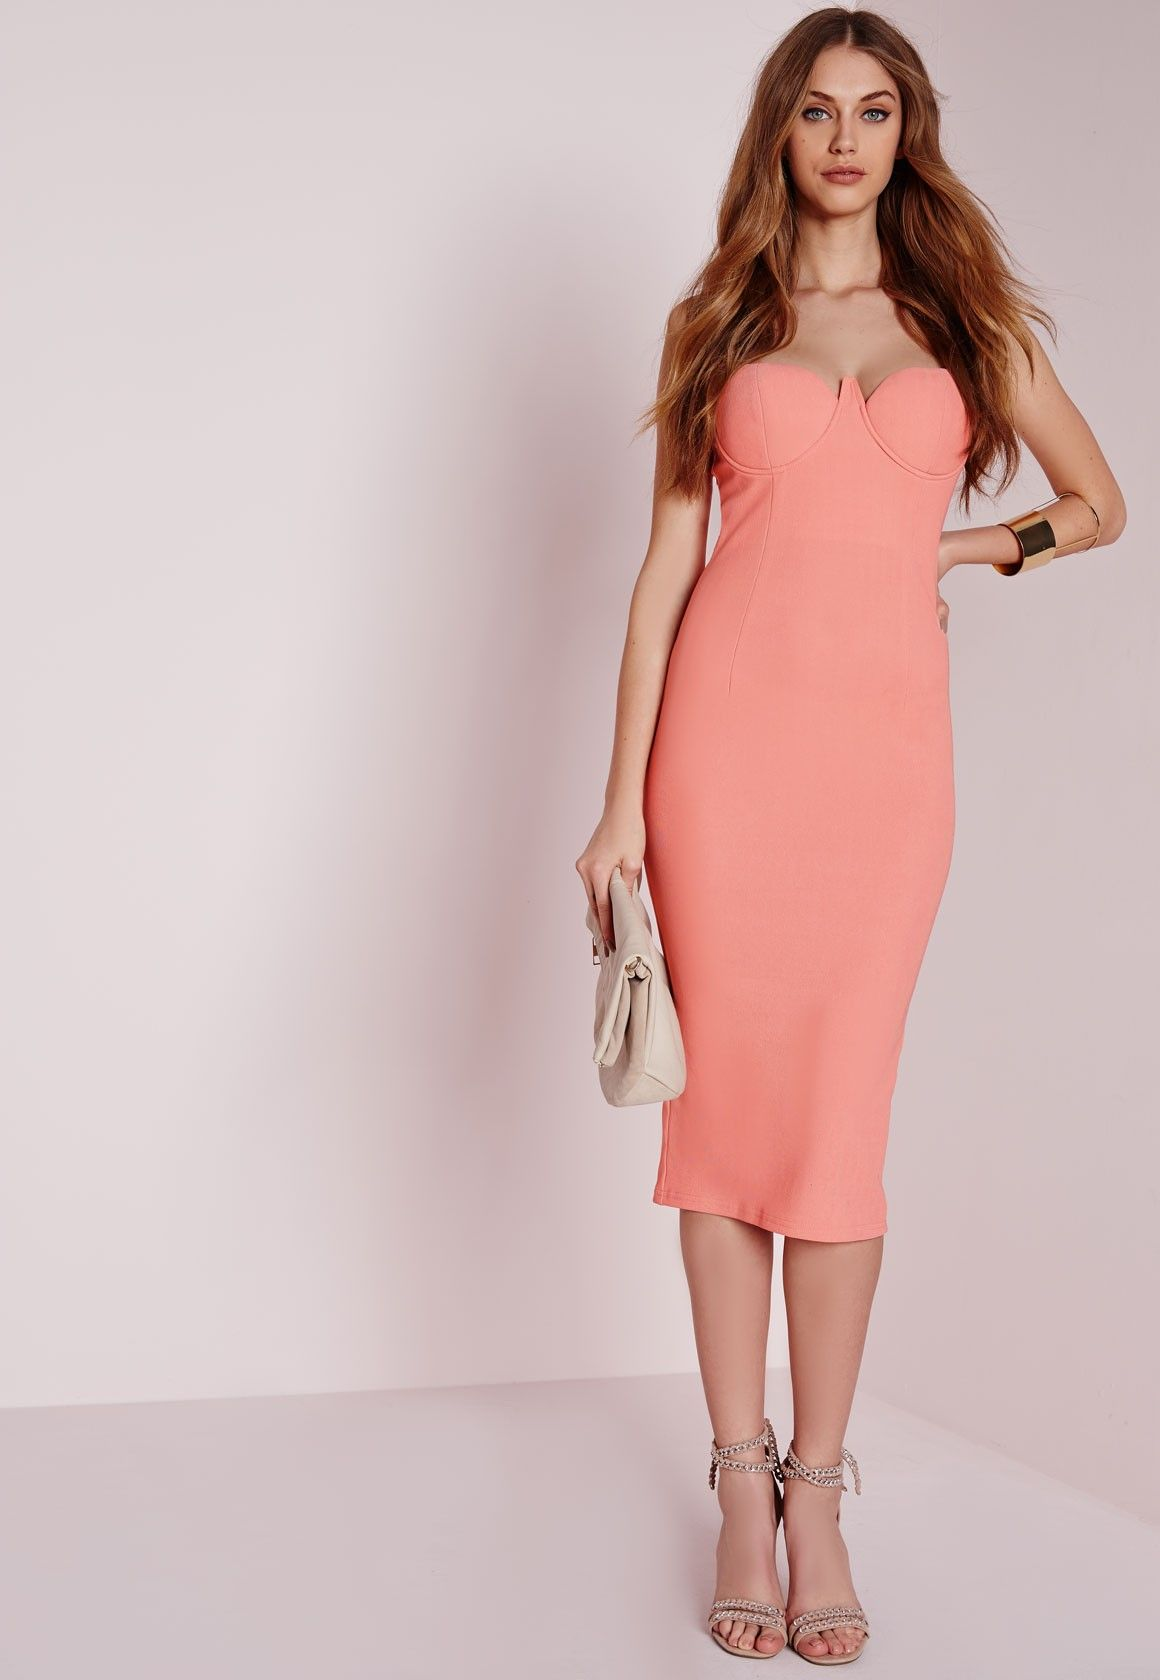 Hot damn girl, you're goina turn some heads in this one. This pink midi dress in figure flattering fabric is both sexy and classy. With strappy  details and bustier features, this dress will have you best dressed for sure. Style with some b...